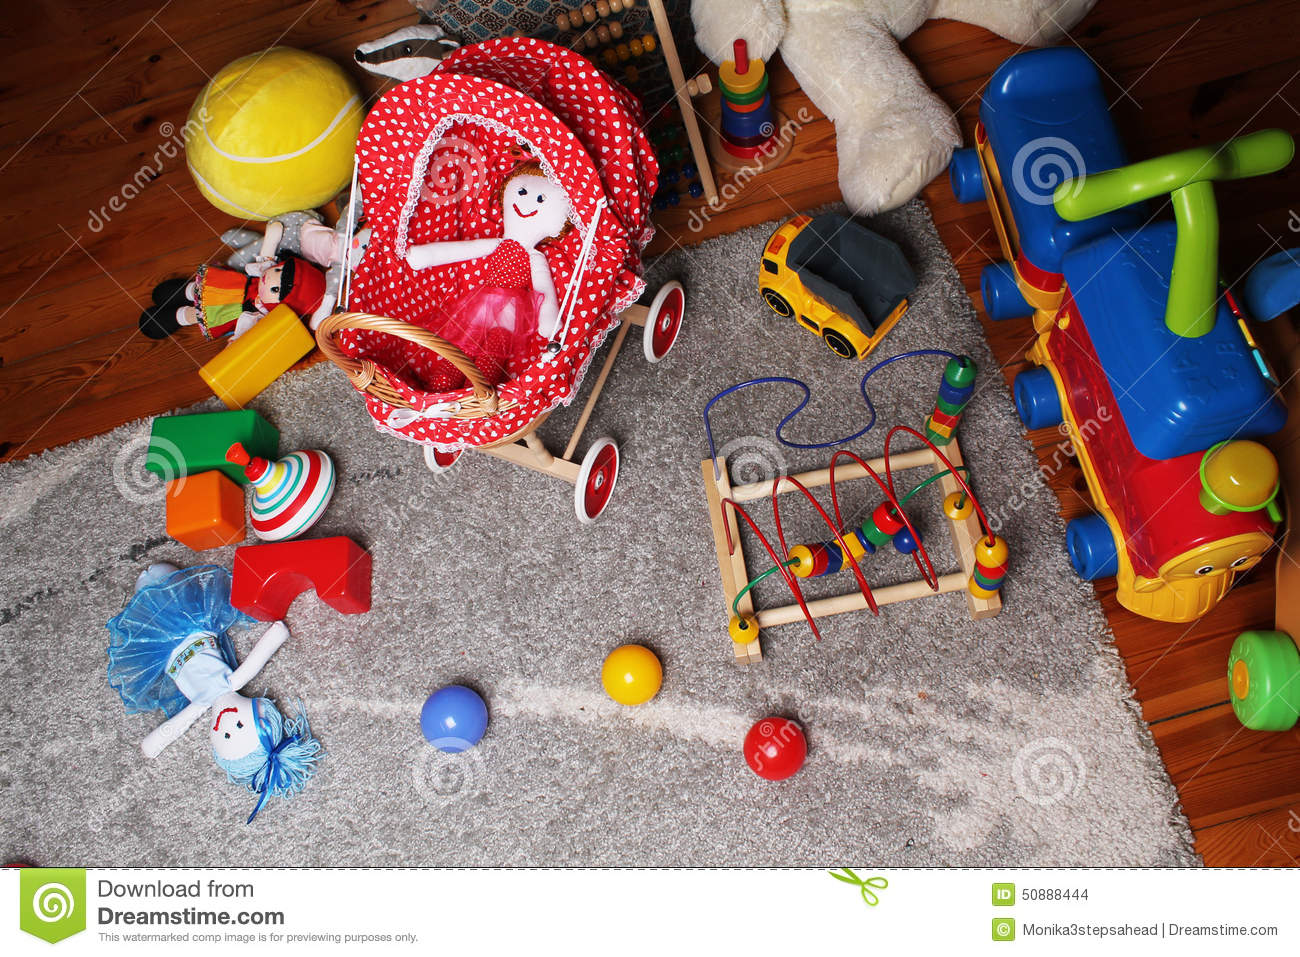 Baby Floor Toys : Babies play room with toys on the floor stock photo